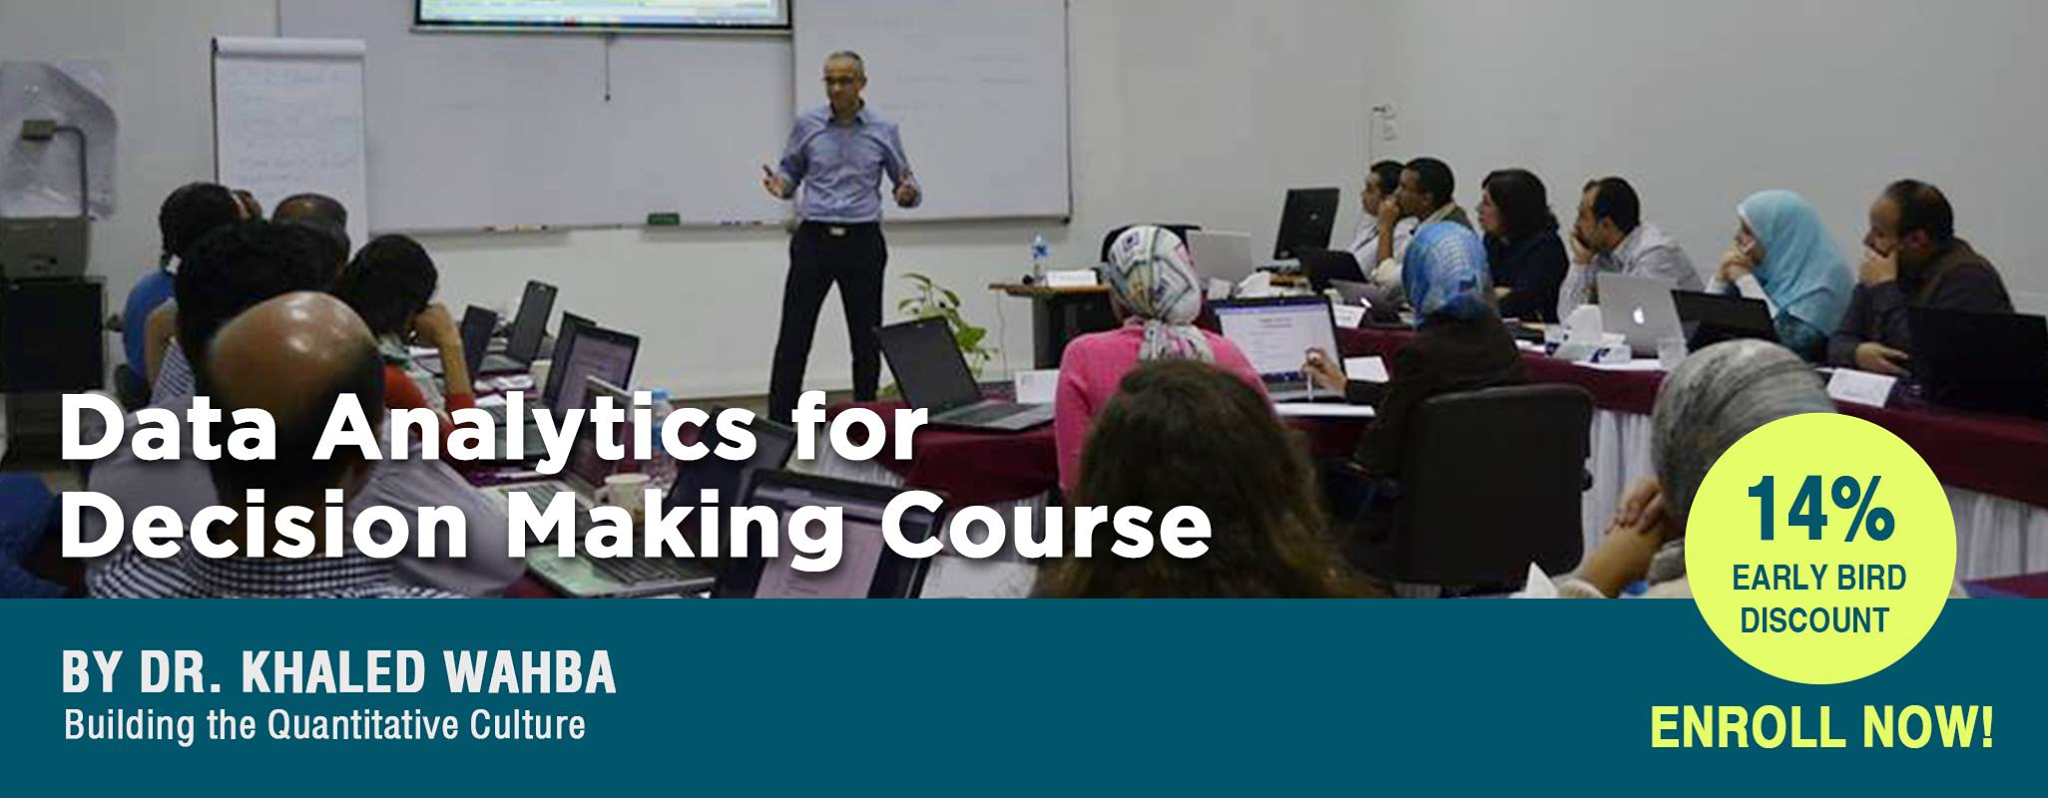 Data Analytics for Decision Making Course - by Dr. Khaled Wahba